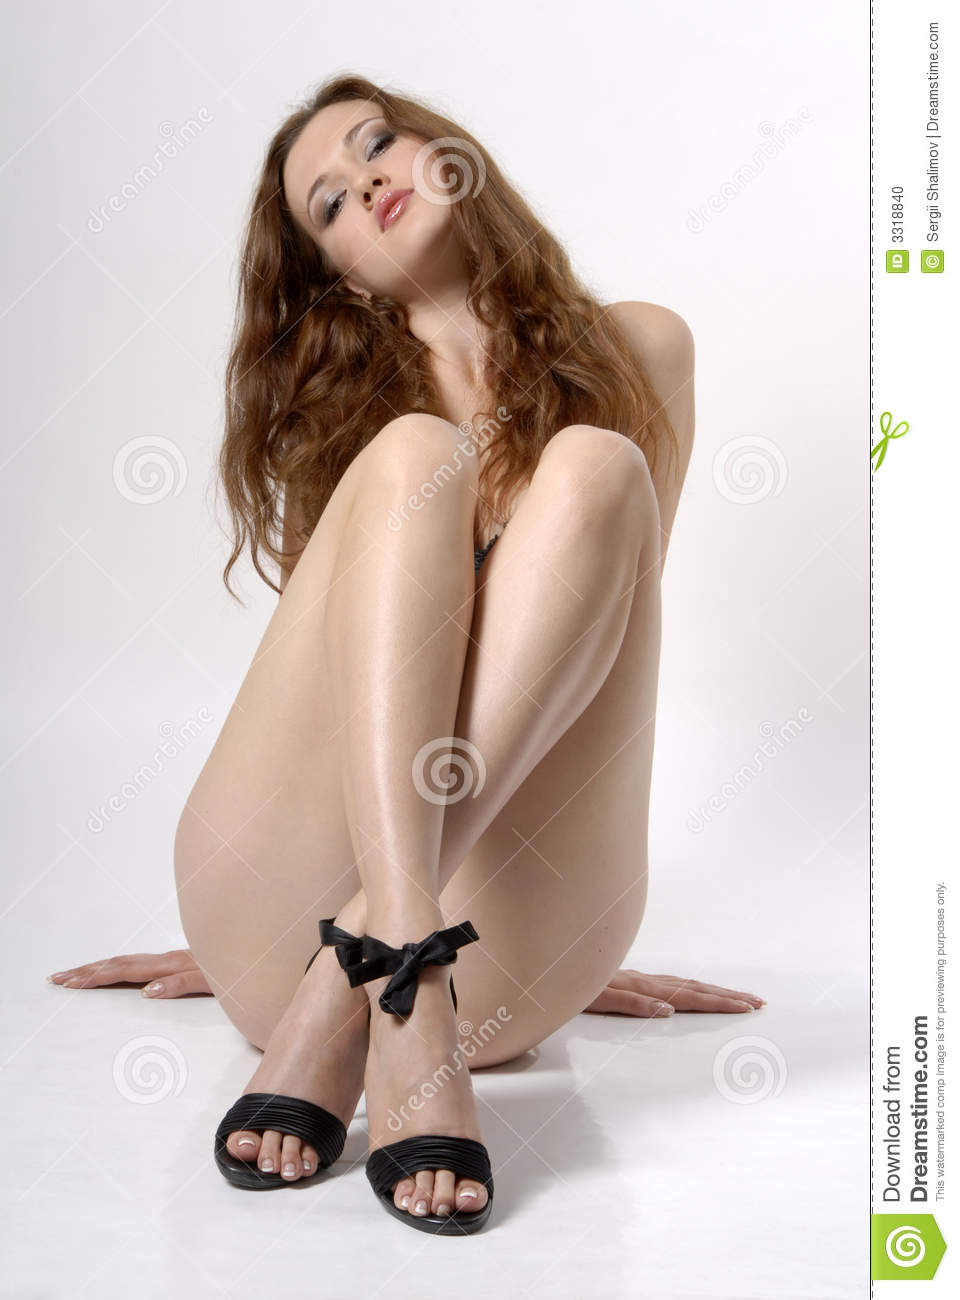 girls nude with legs crossed